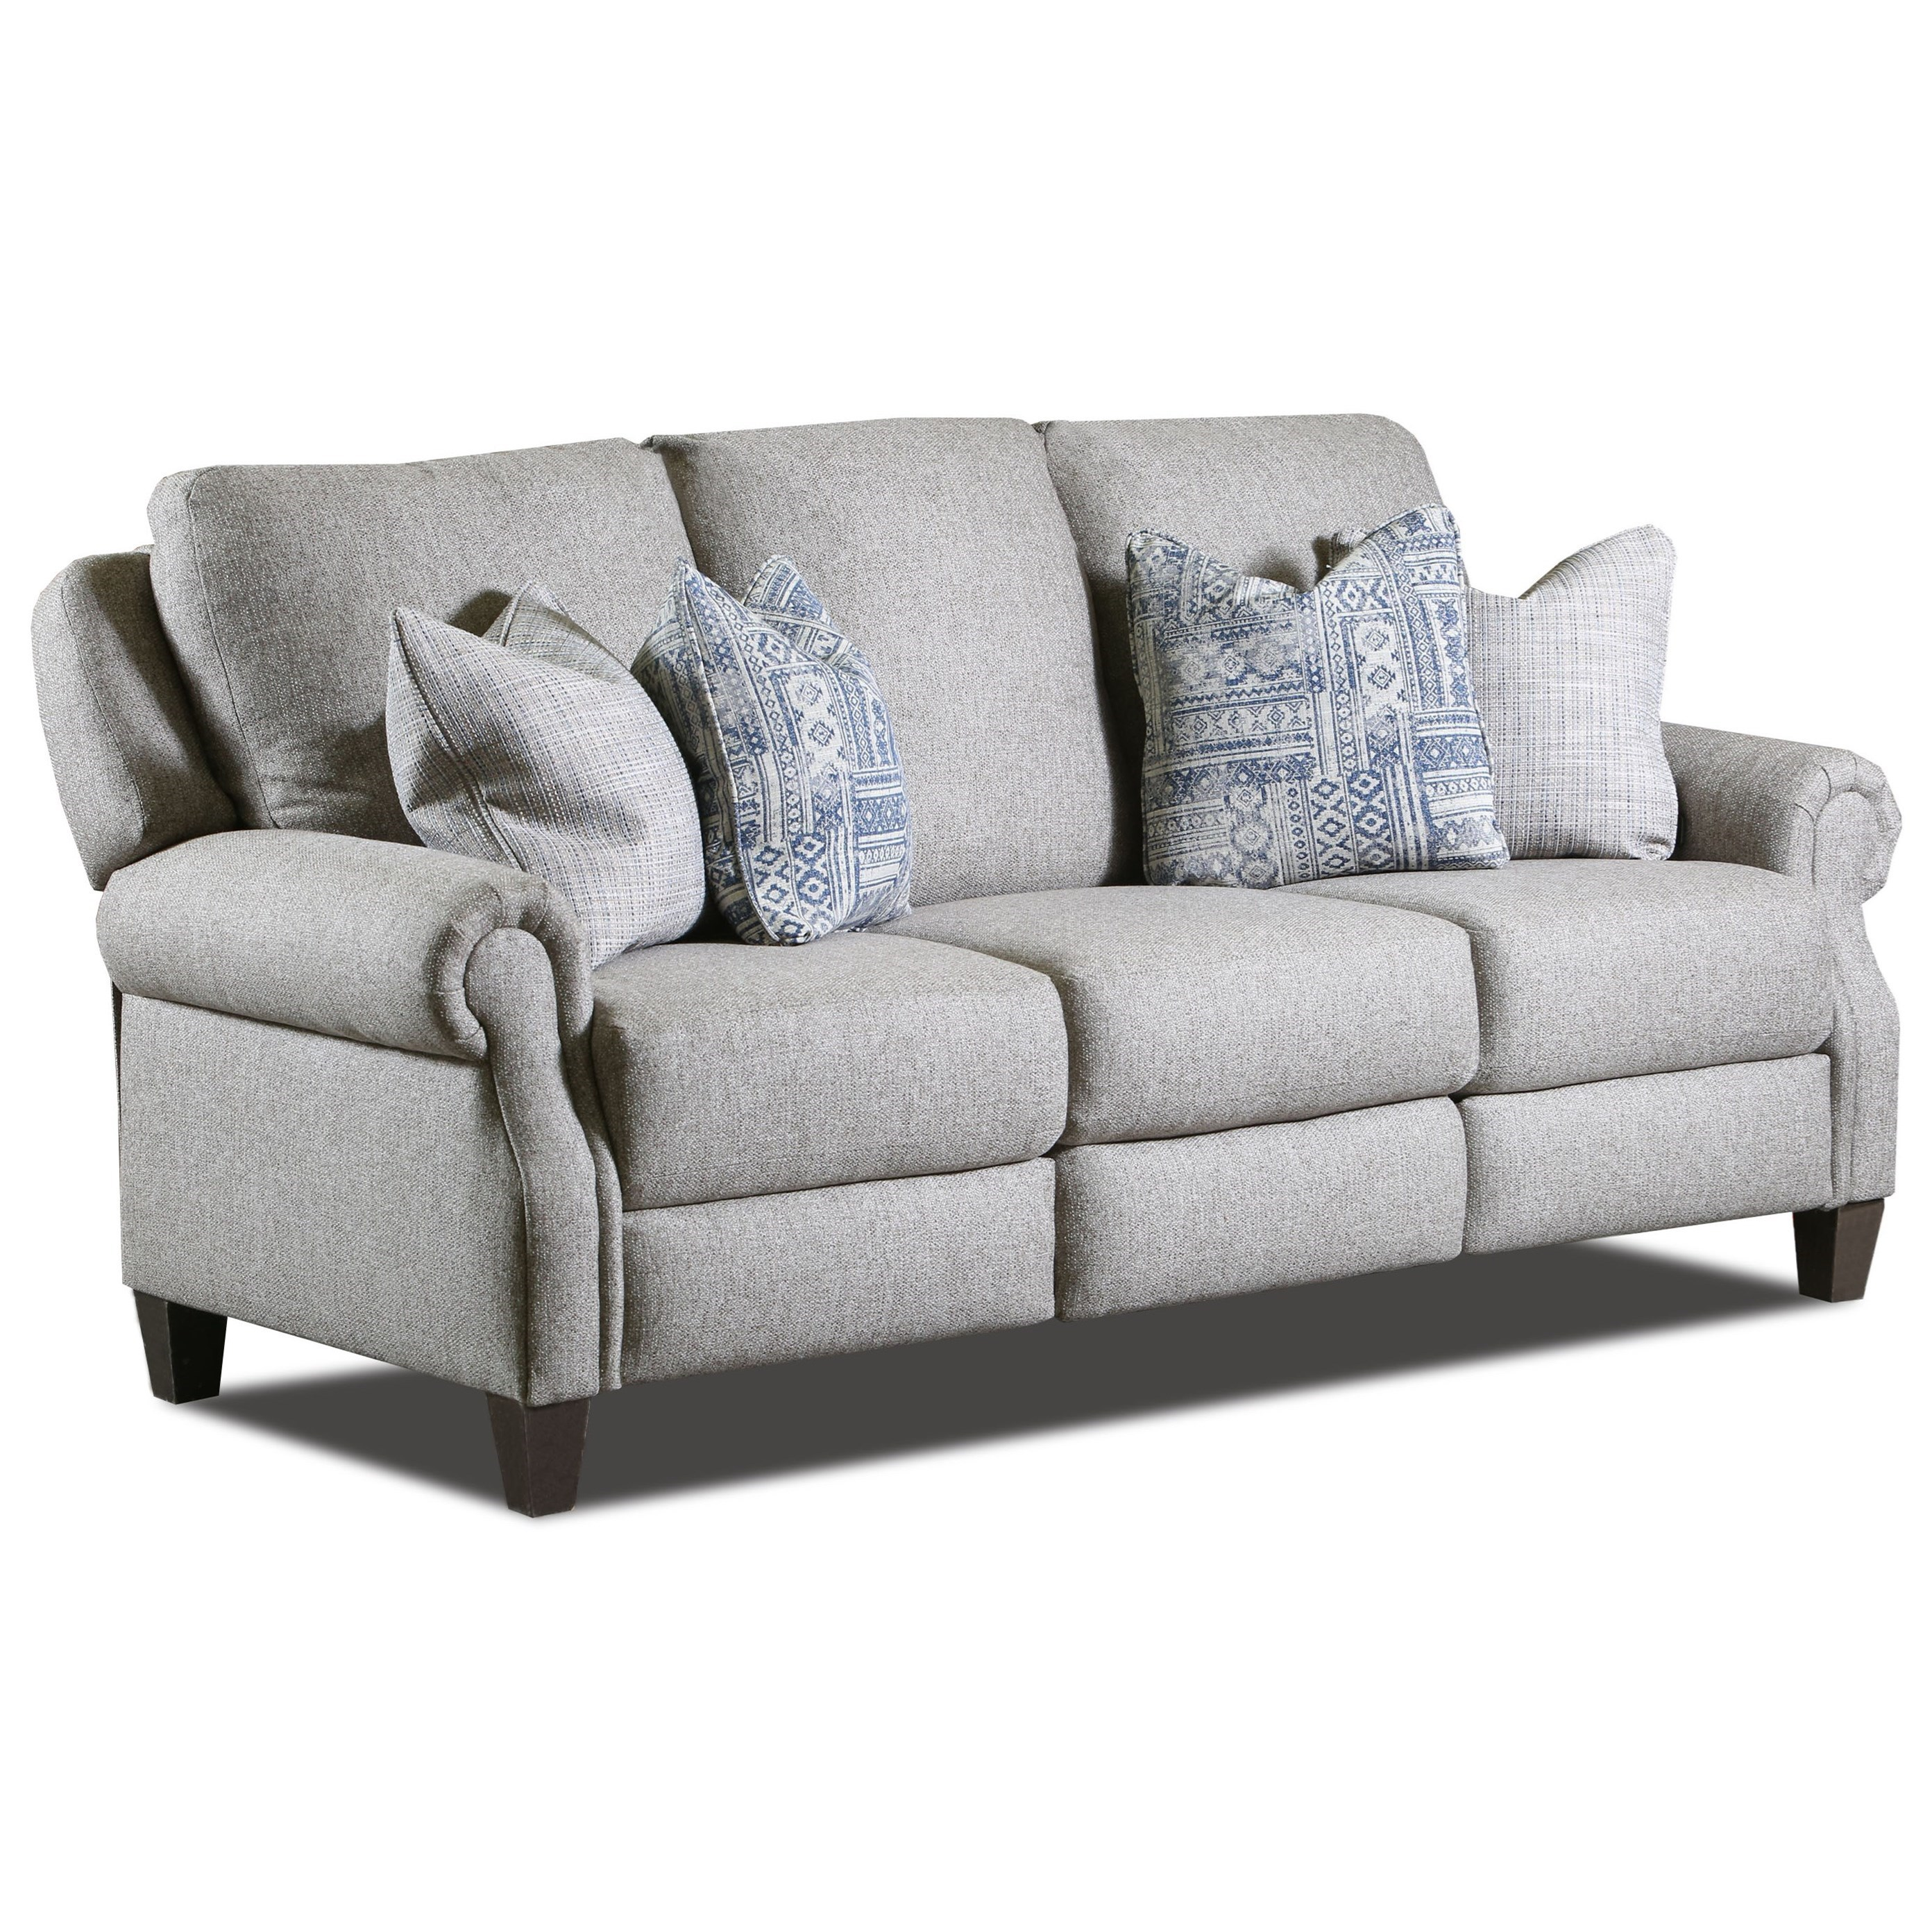 Key Largo Power Reclining Sofa by Southern Motion at Wilson's Furniture